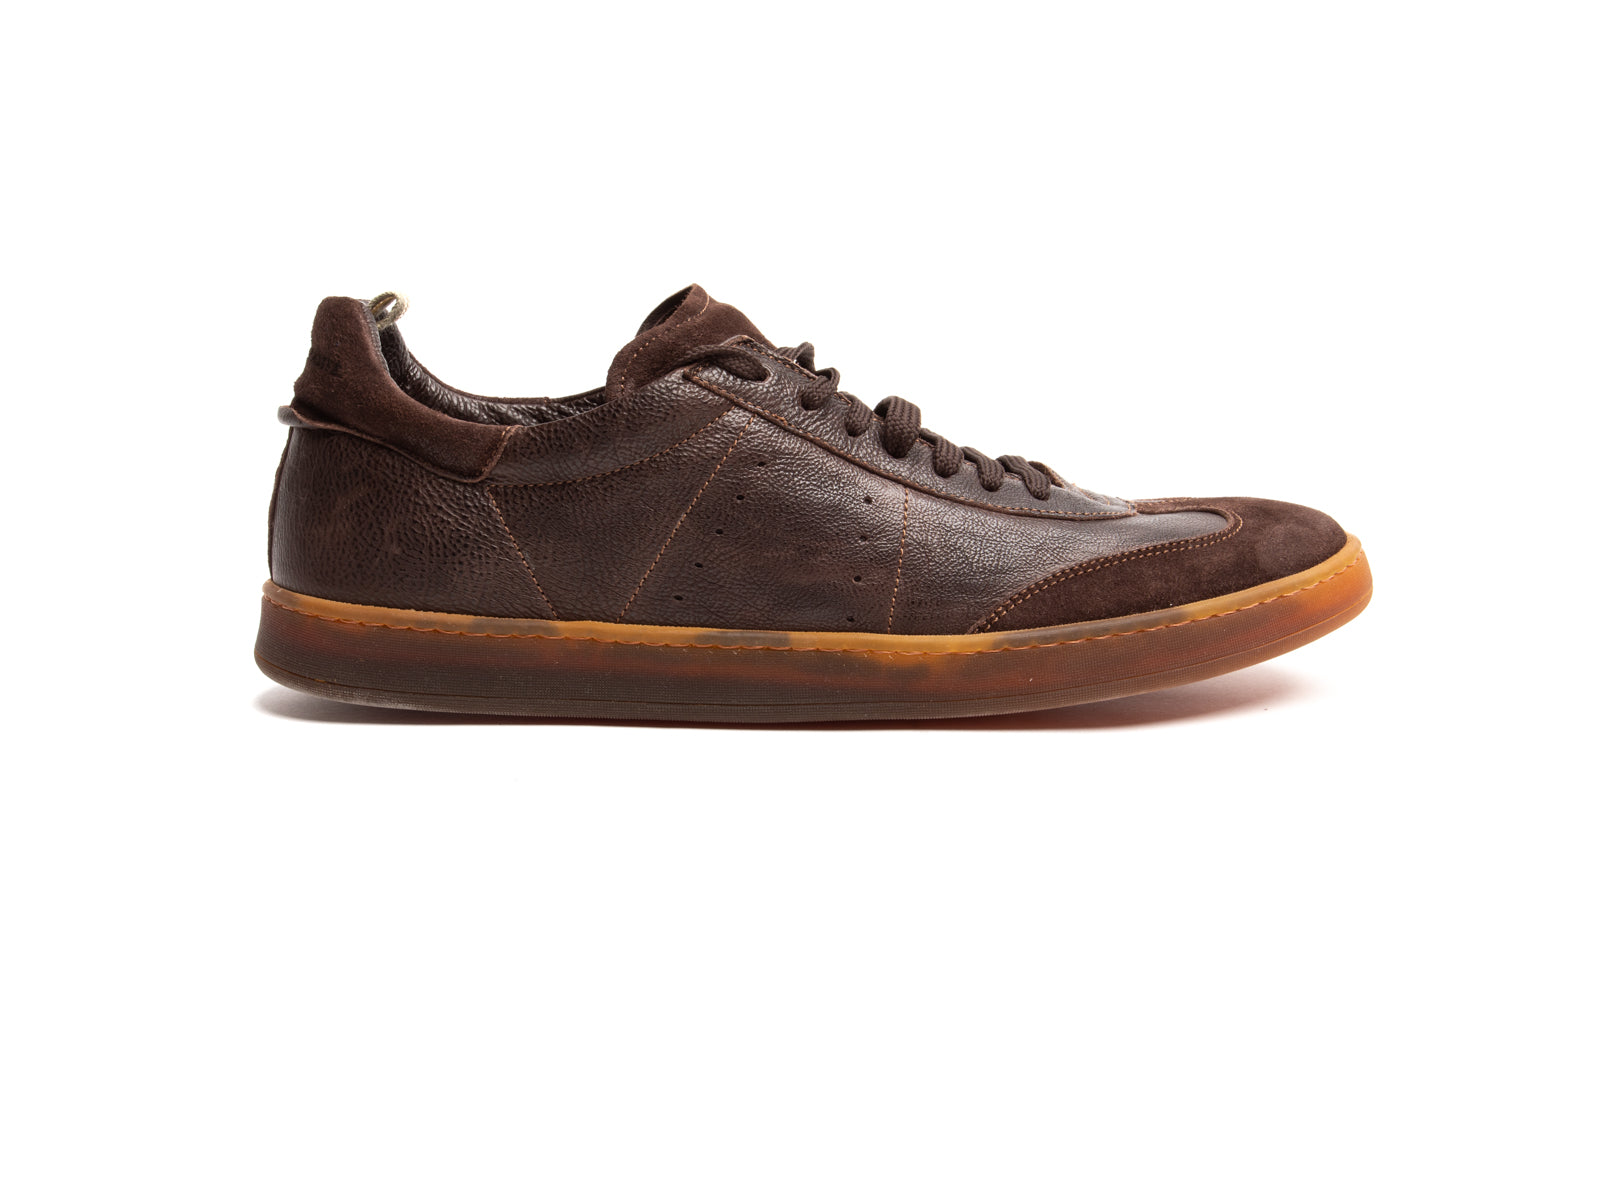 Mixed Media Oliver Giano Sneaker in Chocolate